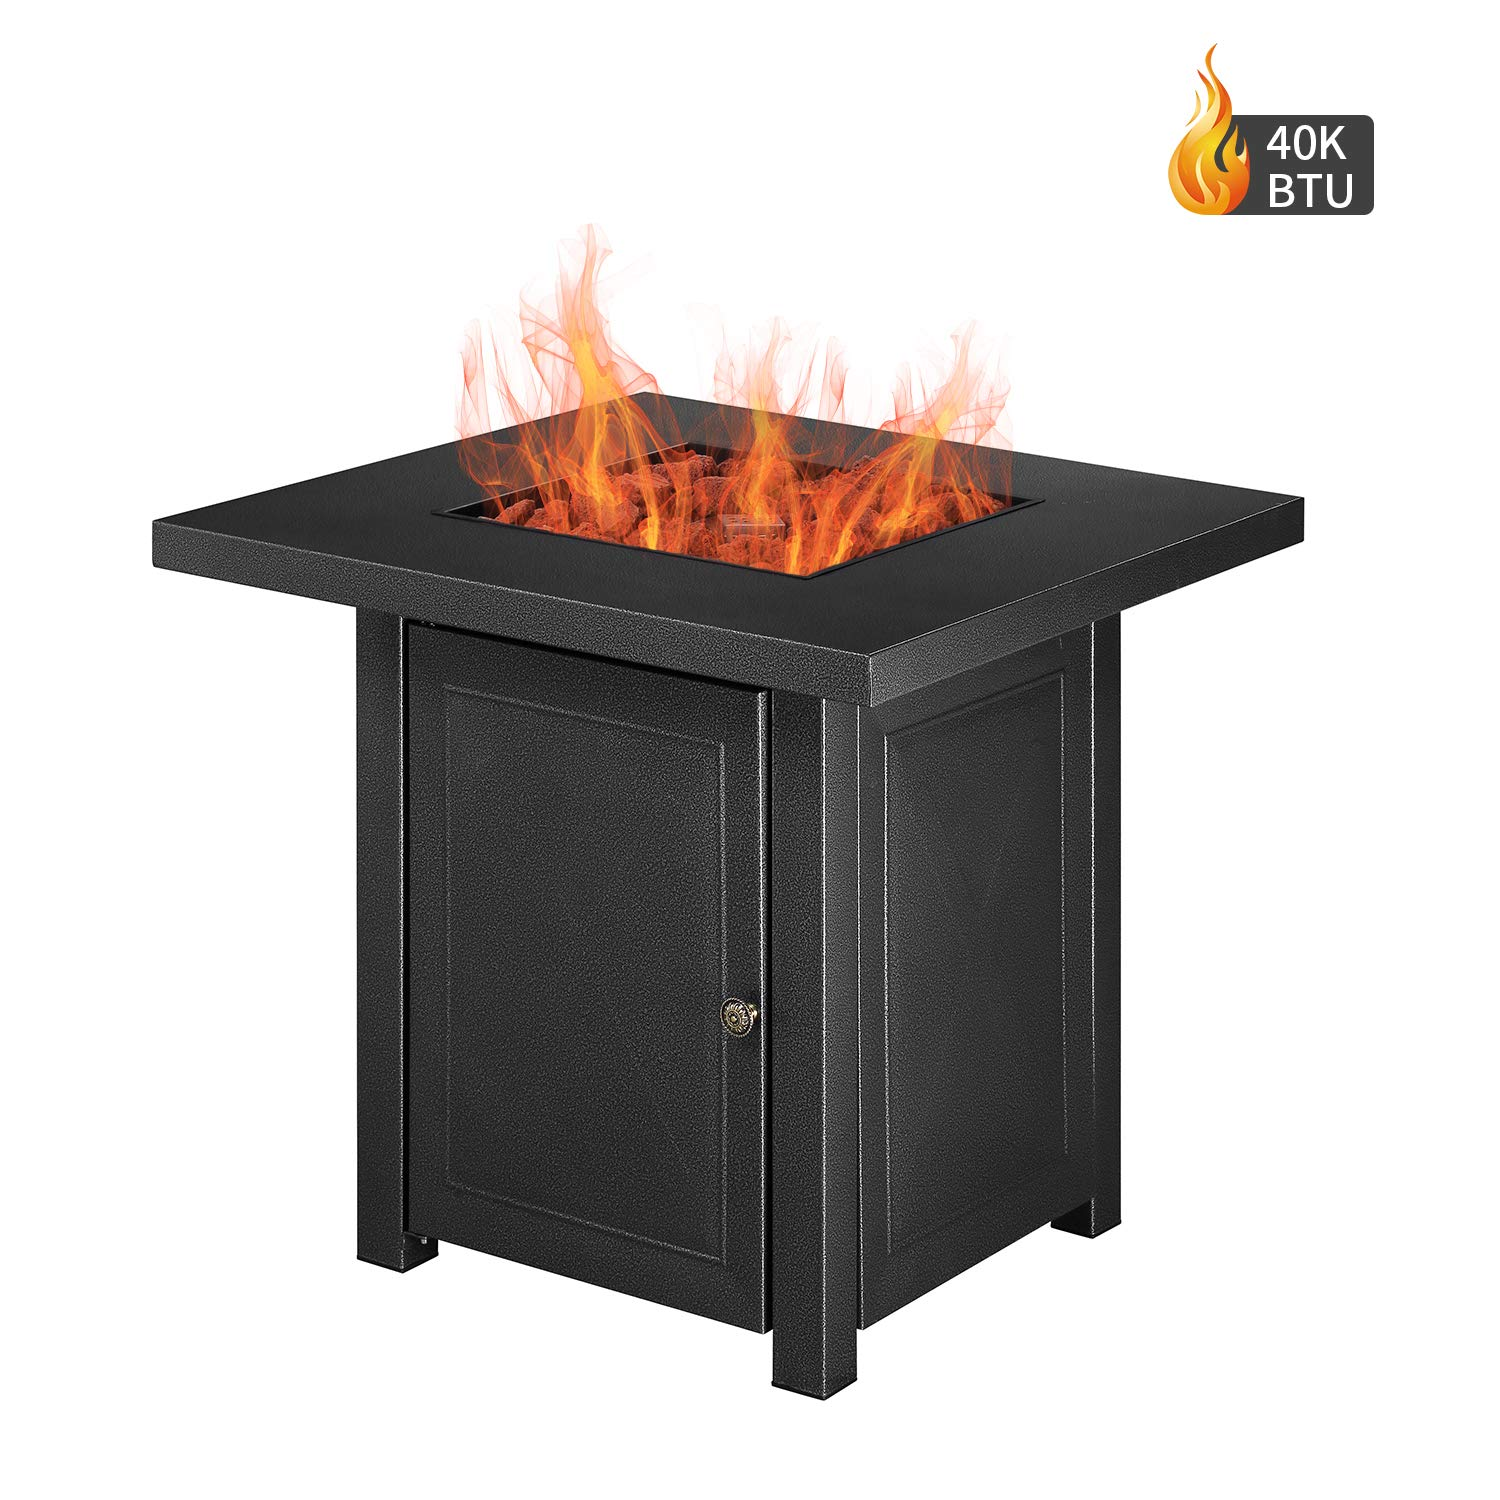 DOIT Outdoor Square 40,000 BTU Propane Gas Fire Pit Table Lava Rocks,28inch Propane Fireplace Strong Steel,Patio Heaters Stove Adjustable Flame by DOIT